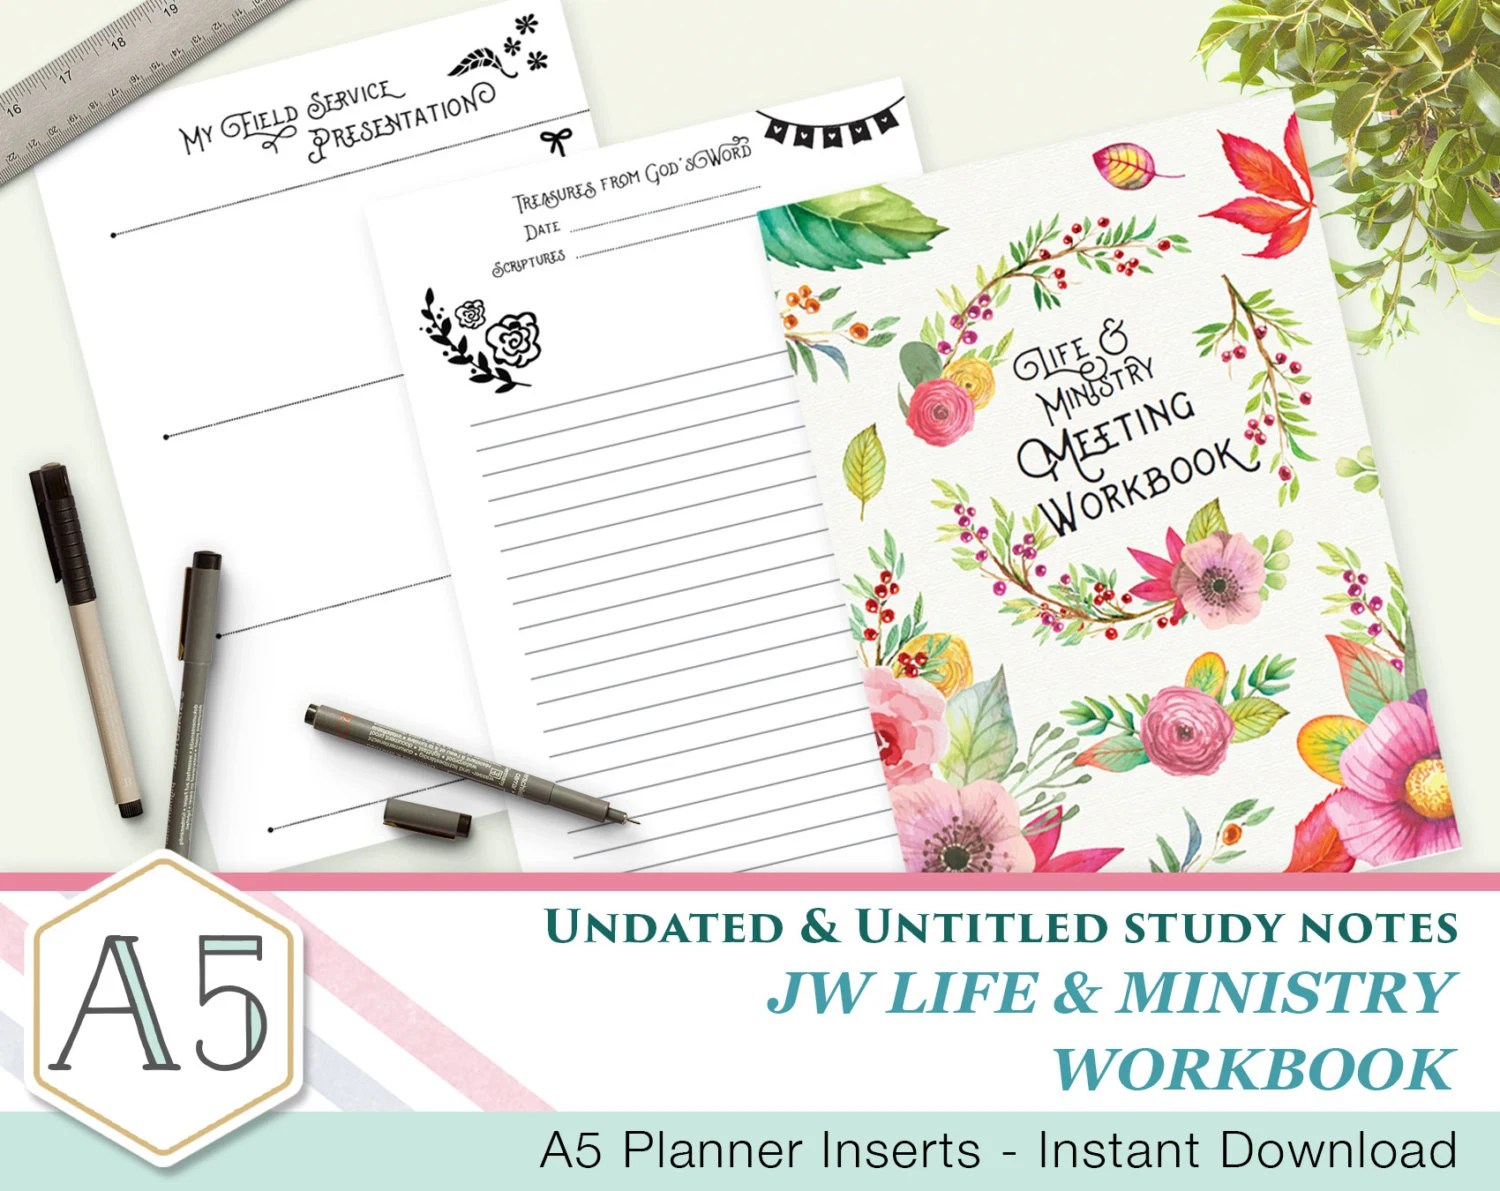 English Simple Jw Meeting Workbook Companion Notes A5